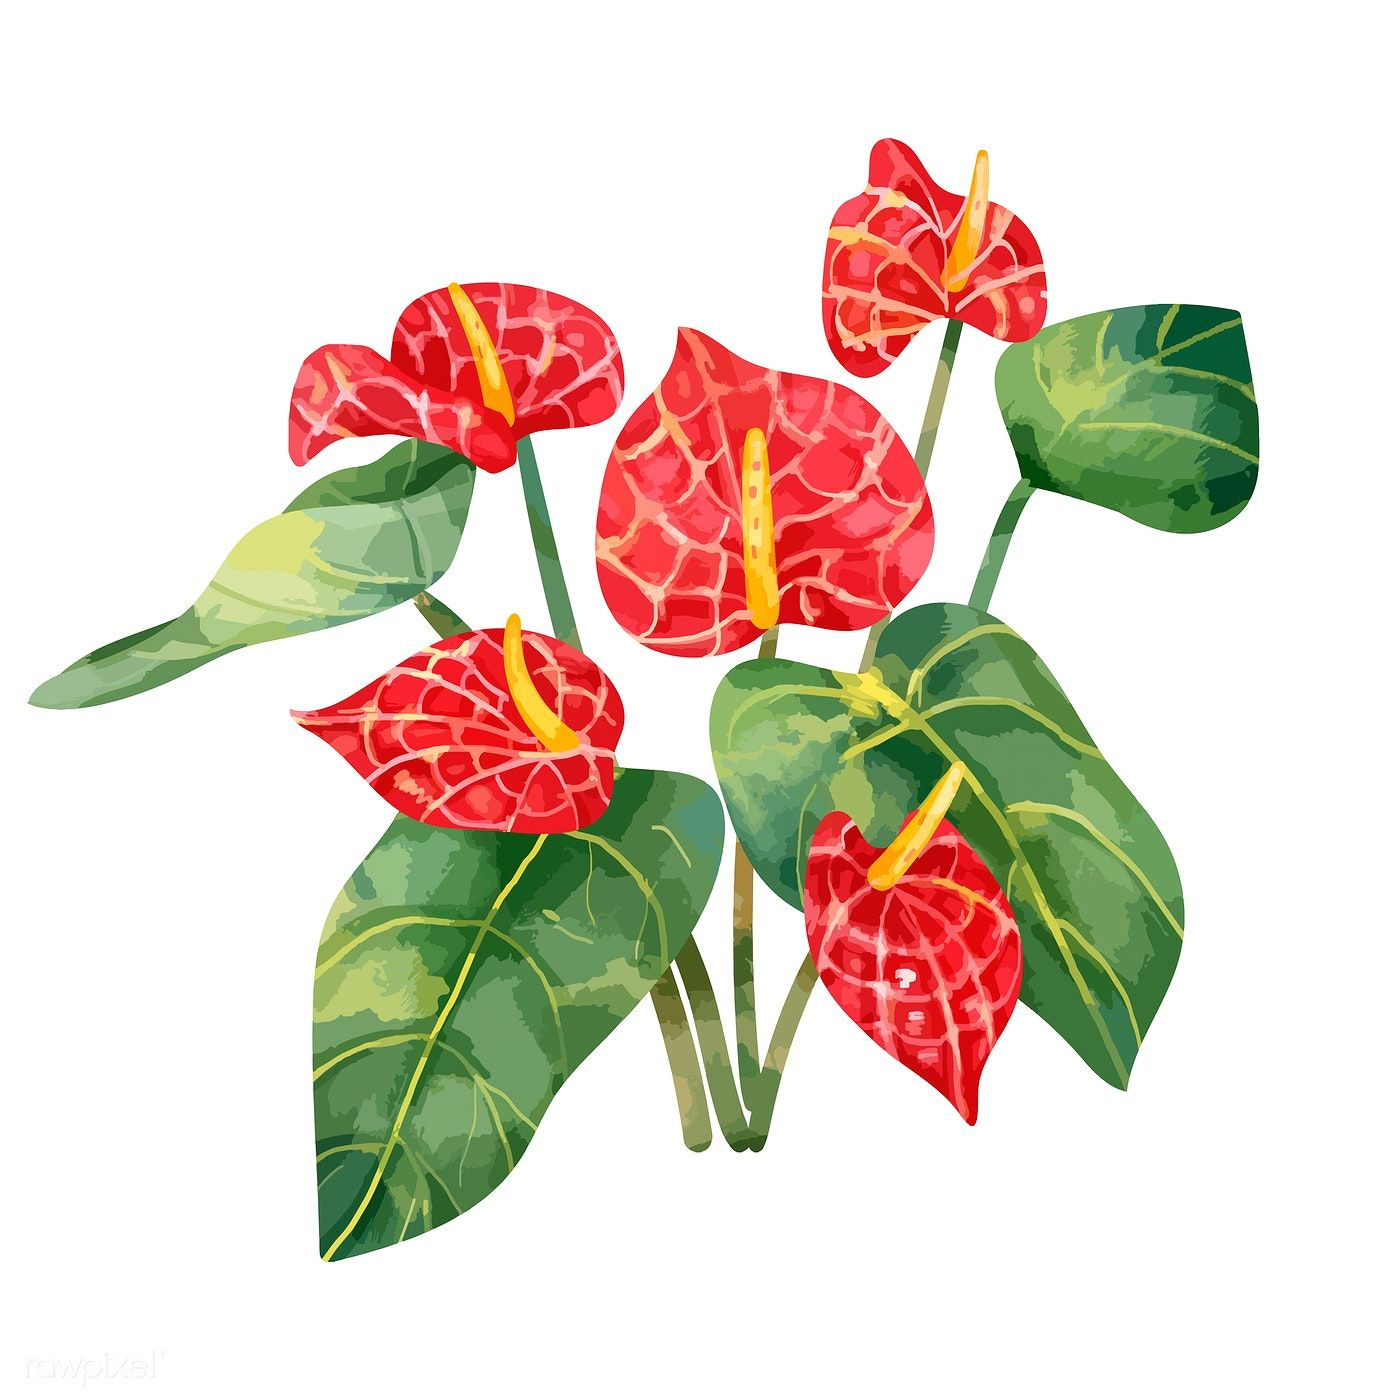 Download Premium Vector Of Hand Drawn Red Laceleaf Flower 421530 Flower Illustration Botanical Drawings How To Draw Hands